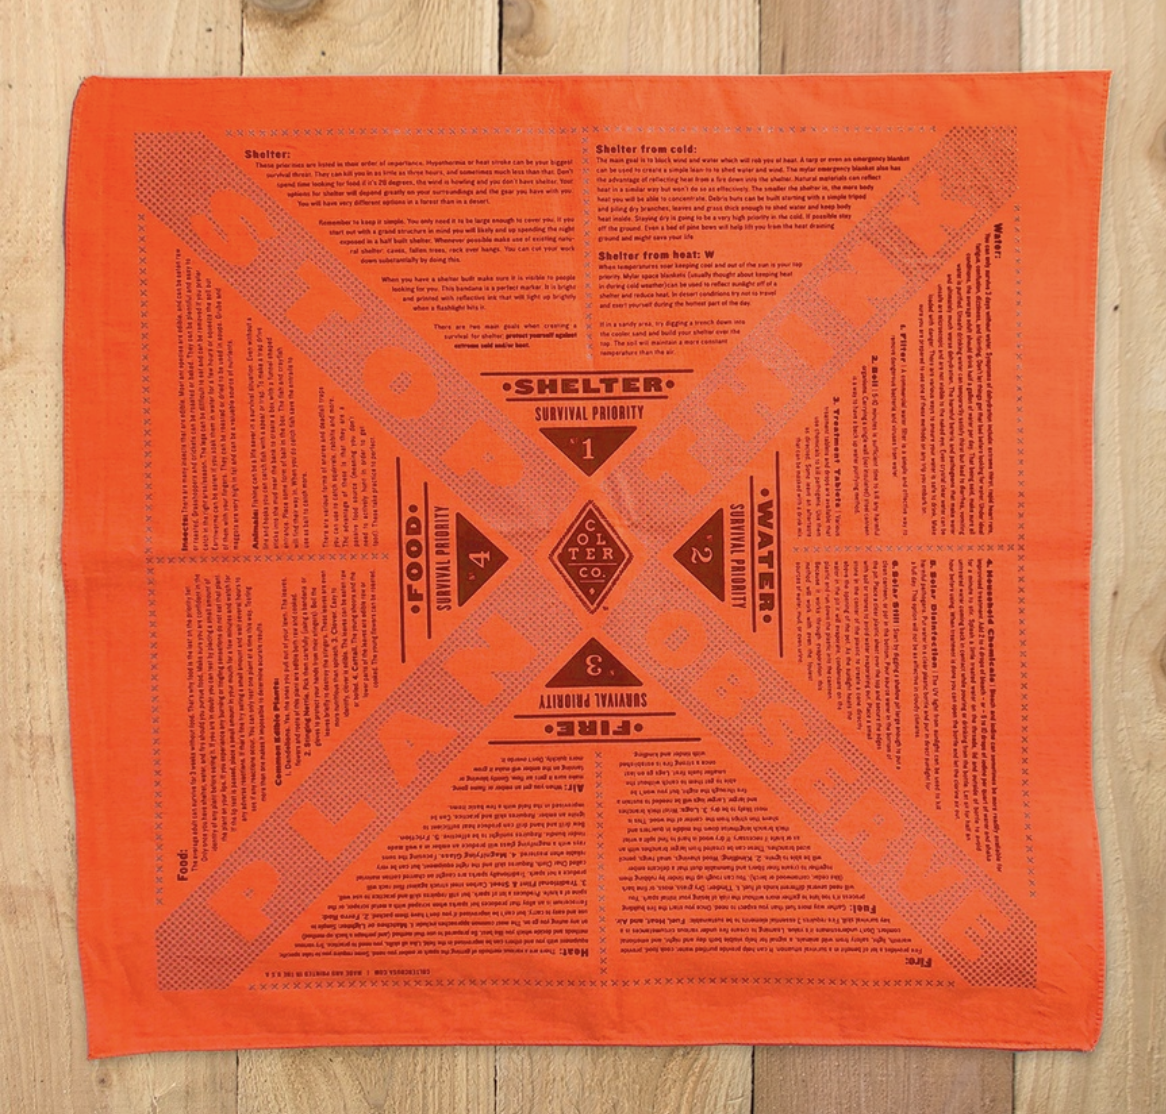 Colter Co. Survival bandana